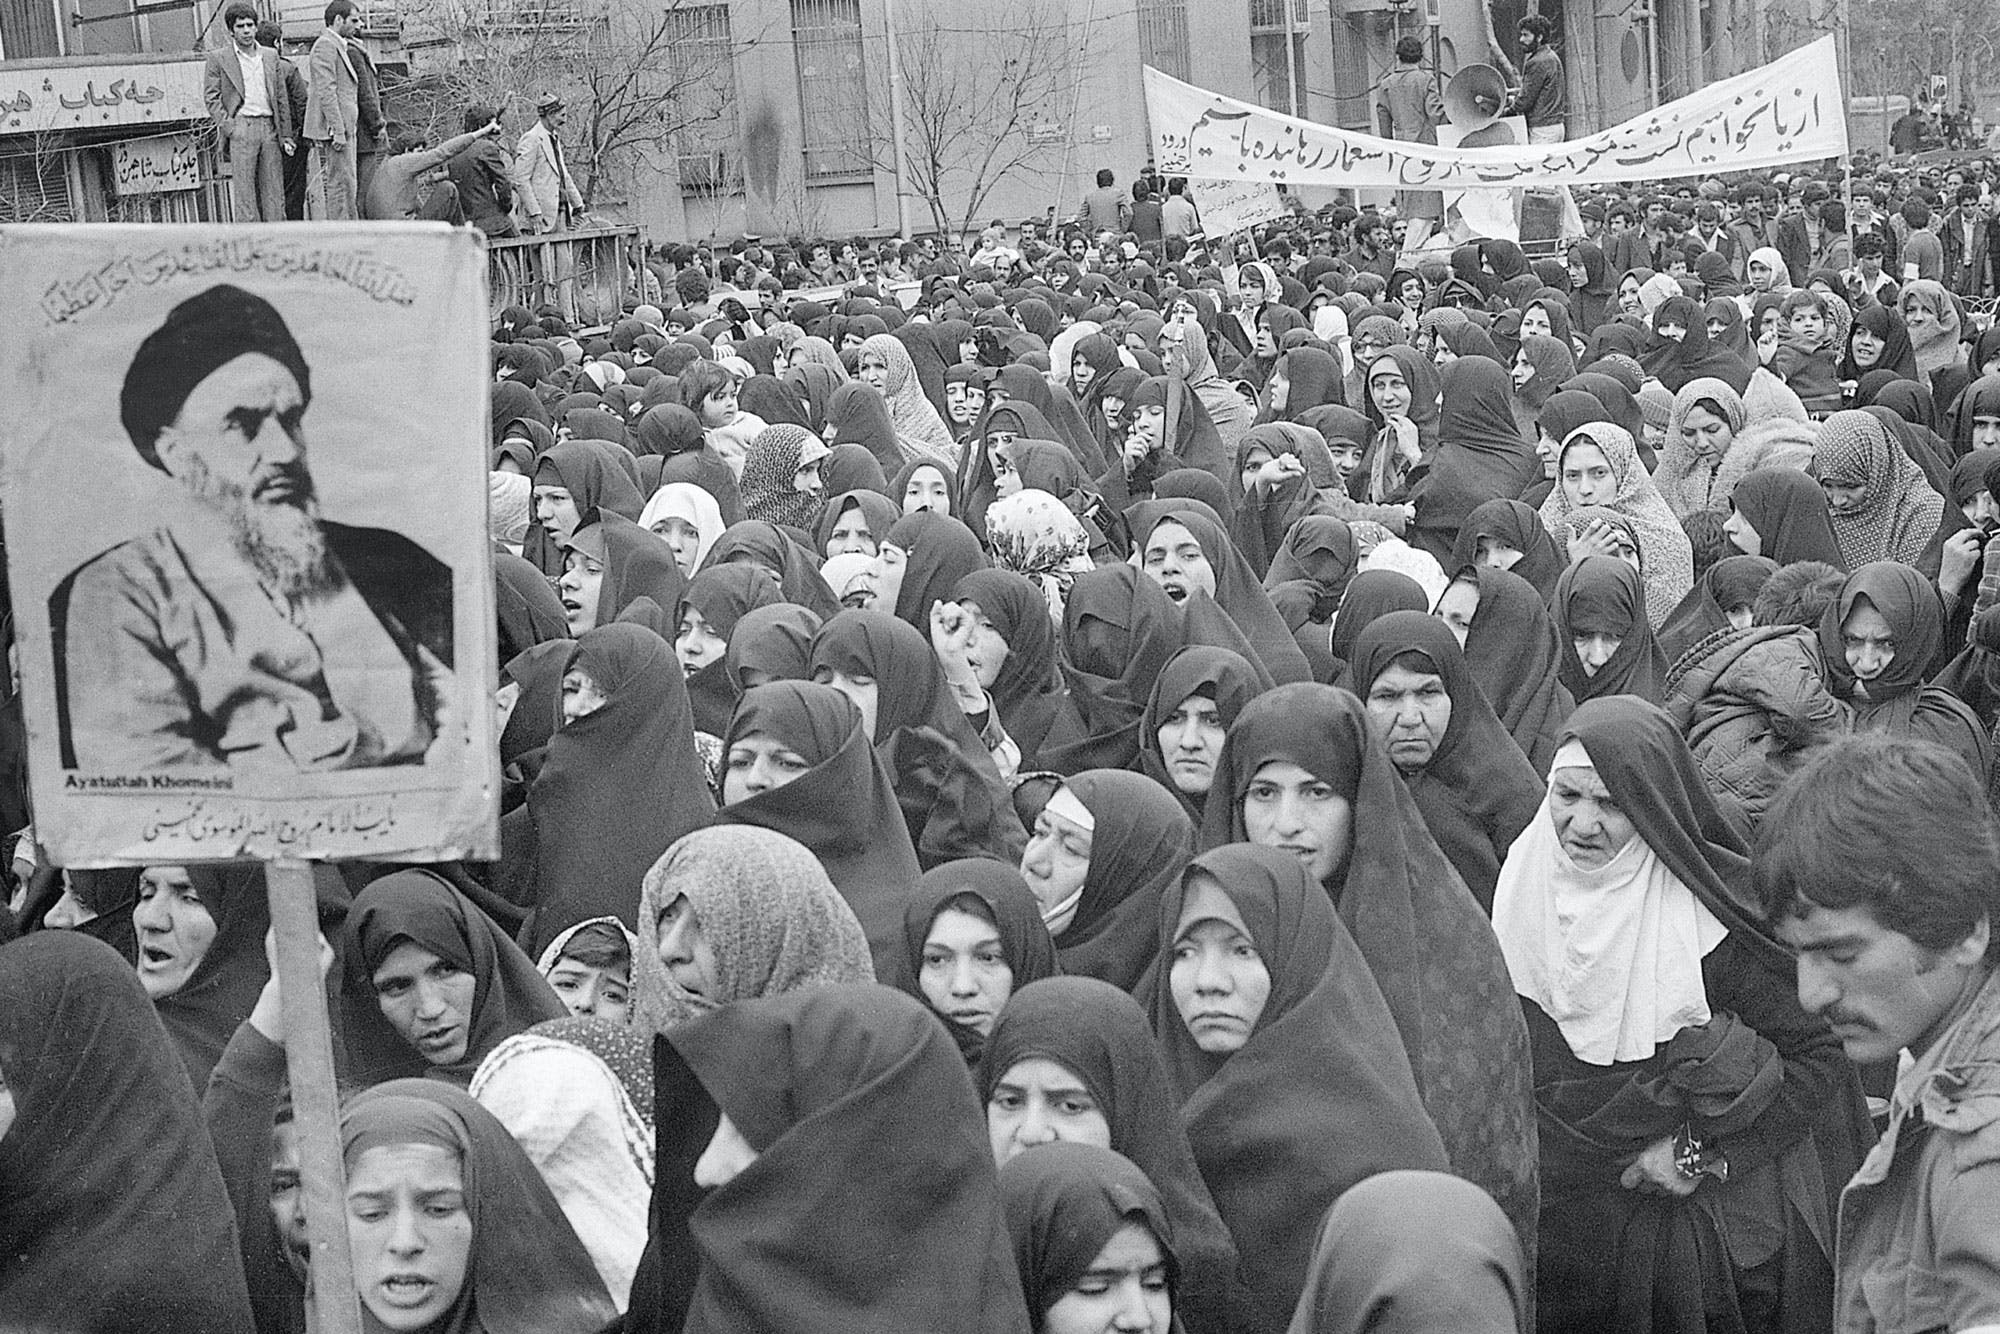 (Original Caption) 2/1979-Tehran, Iran- Women dressed in traditional Moslem garb are gathered near a sign bearing an image of the Ayatollah Khomeini, during a Tehran rally early in Februaury... Khomeini has called for all women to wear the traditional head-to-ankle chador. Wearing western style dress and makeup and smoking, women took to the streets in a series of marches. Several thousand Pro-Khomeini women, many covered by the veil, staged a counter-demonstration.